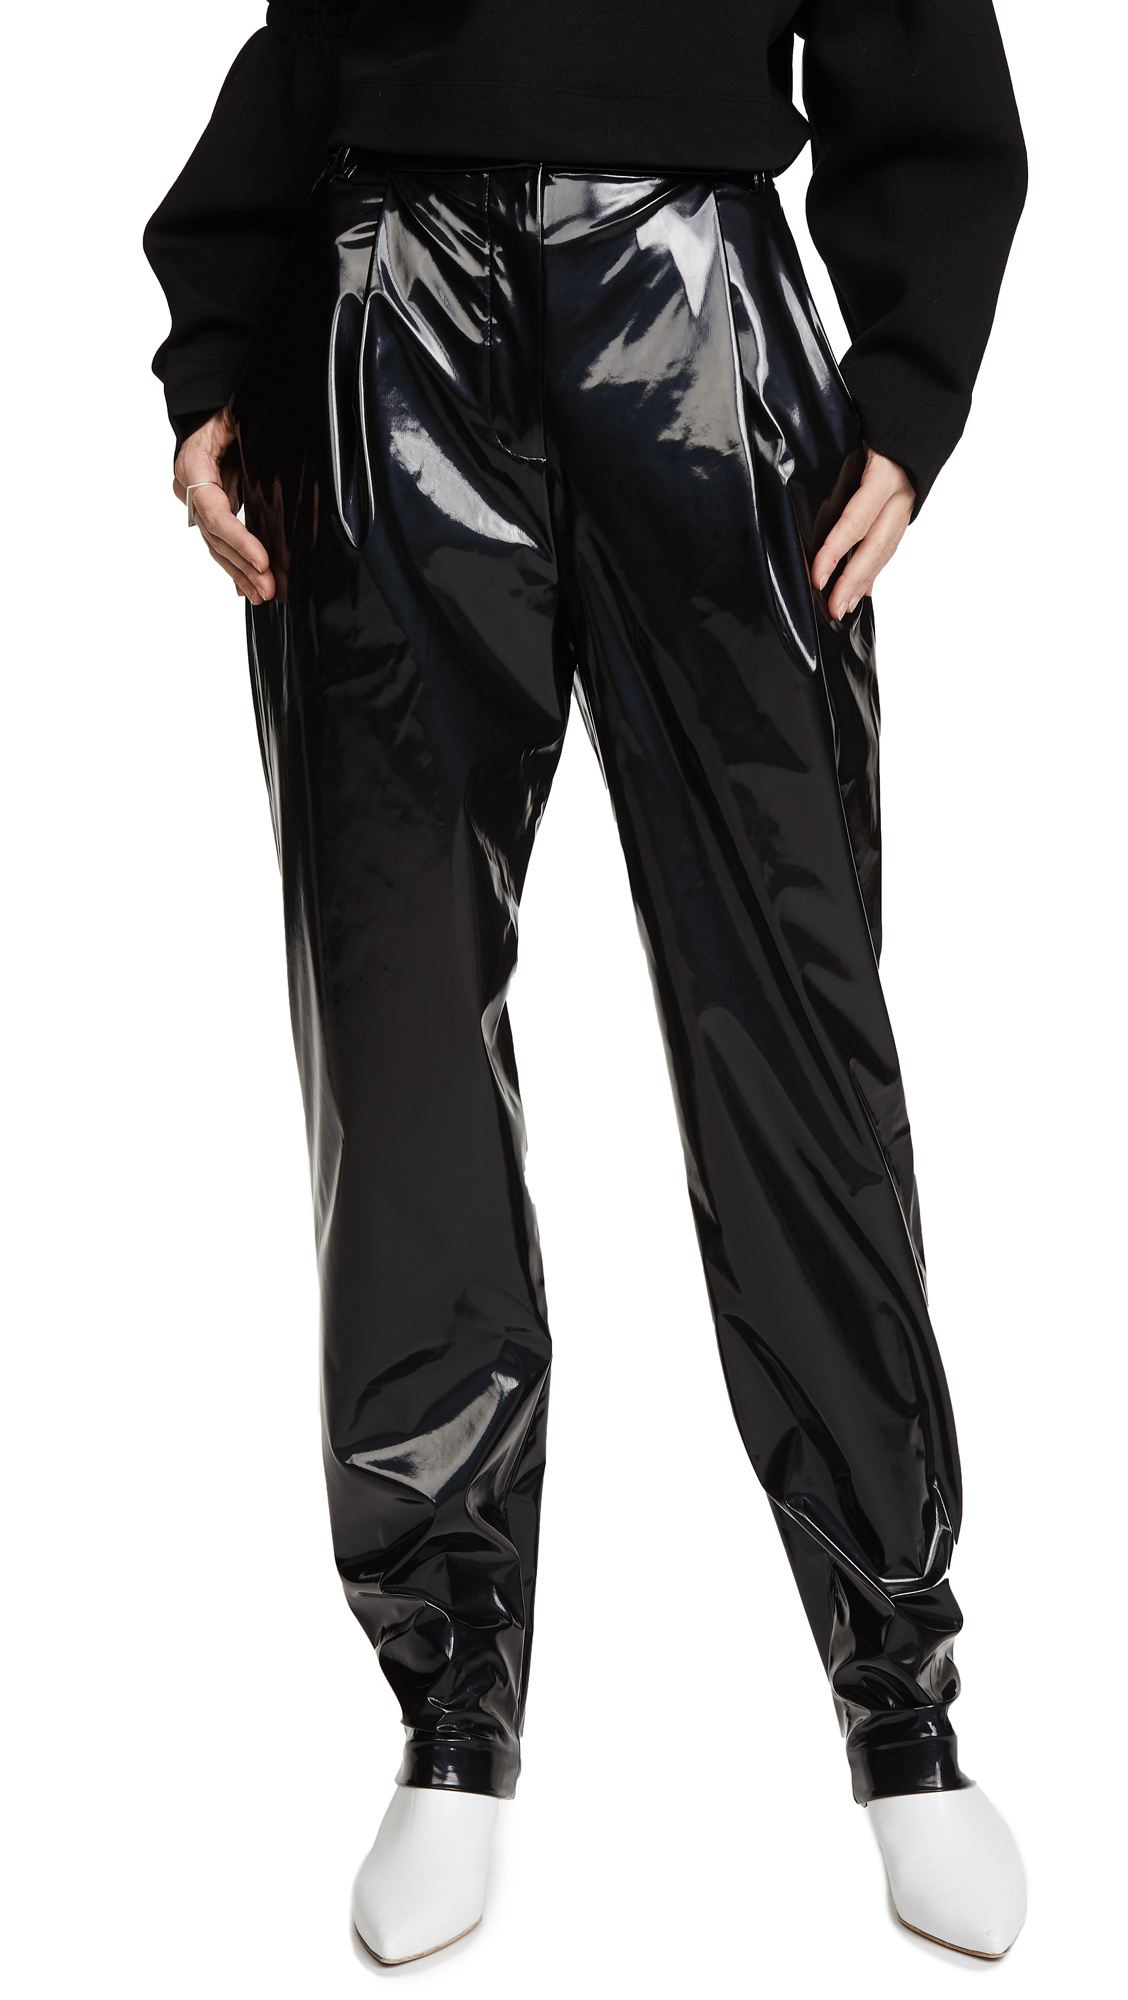 Tibi Patent Sculpted Pleat Pants - Black